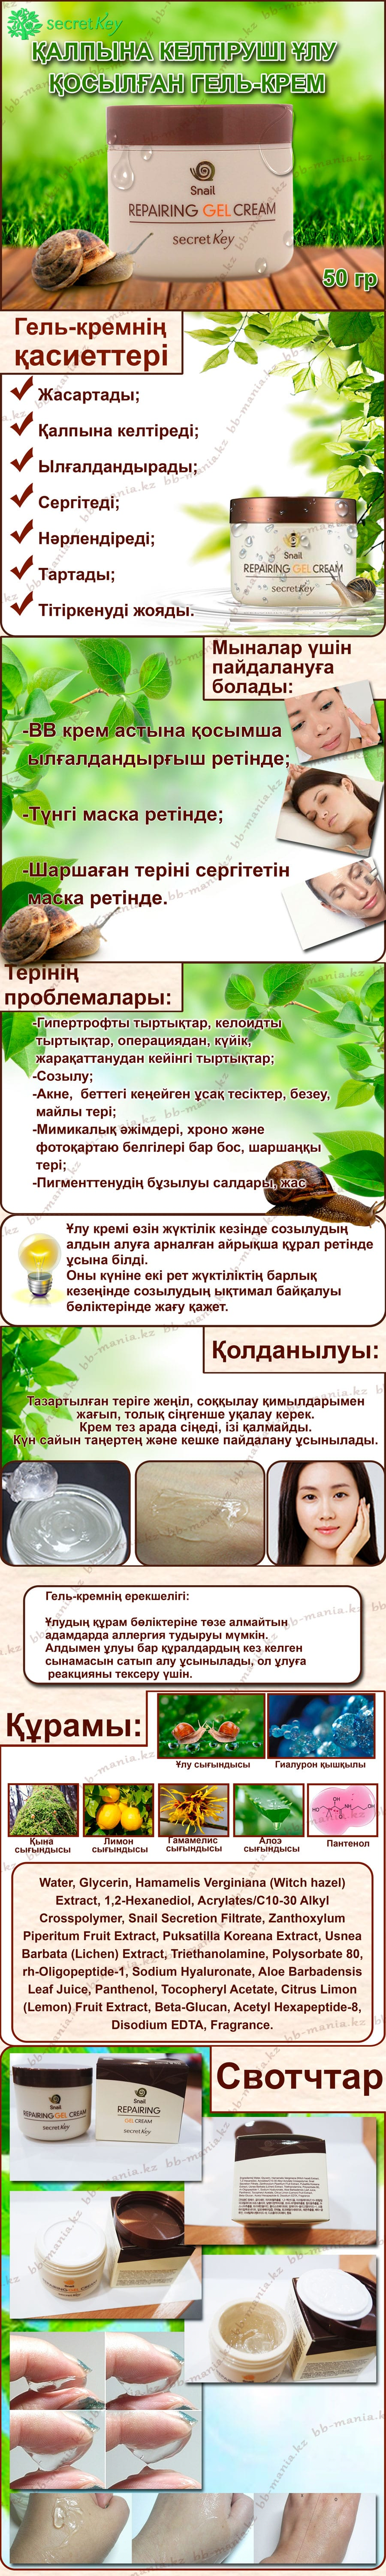 snail-repairing-gel-cream-secret-key-кз-min